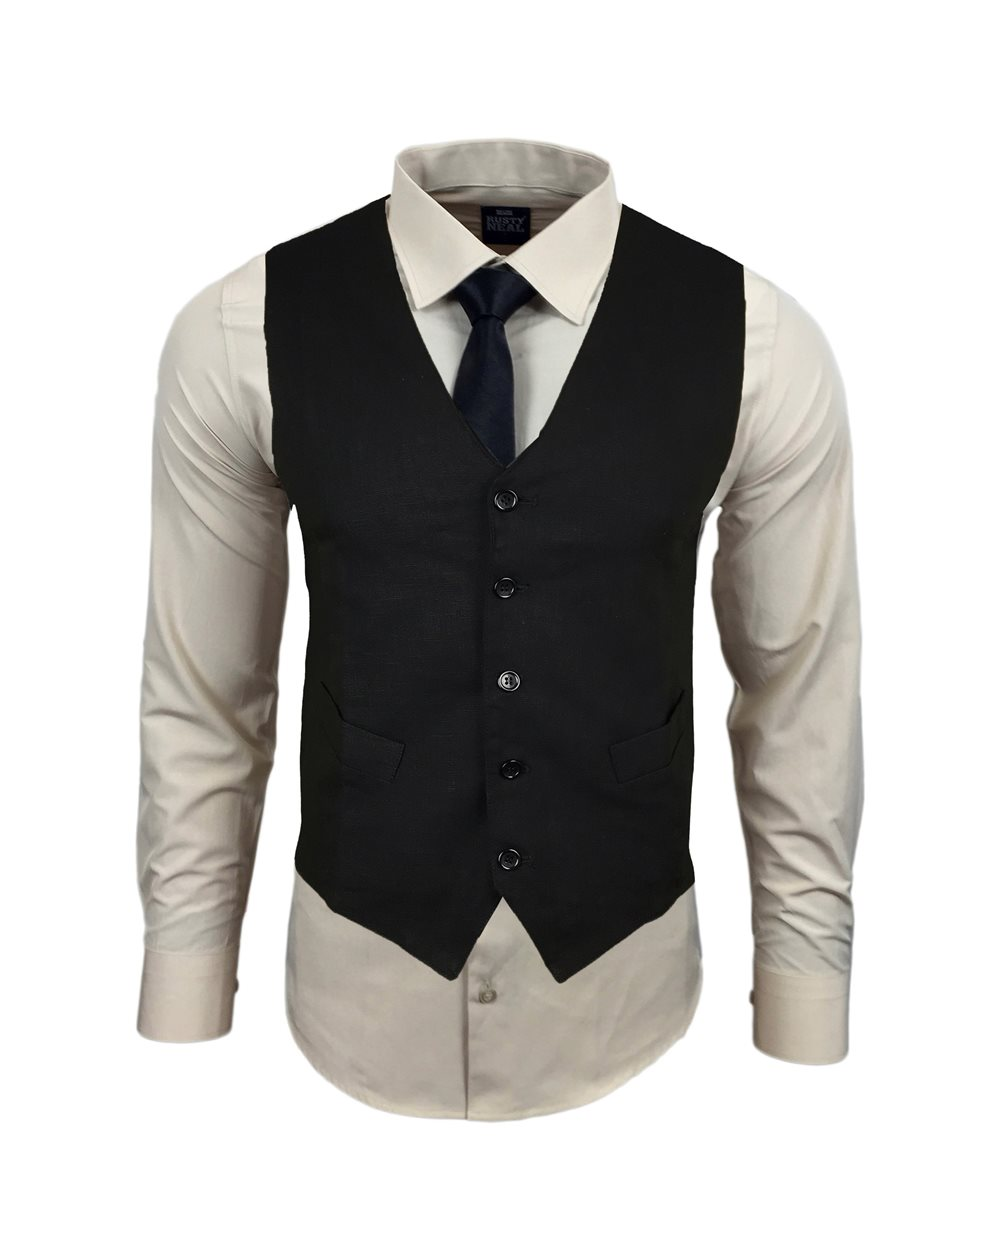 Subliminal Mode - Gilet + Chemise + Cravate homme bicolore uni manches longues coupe slim business RN33